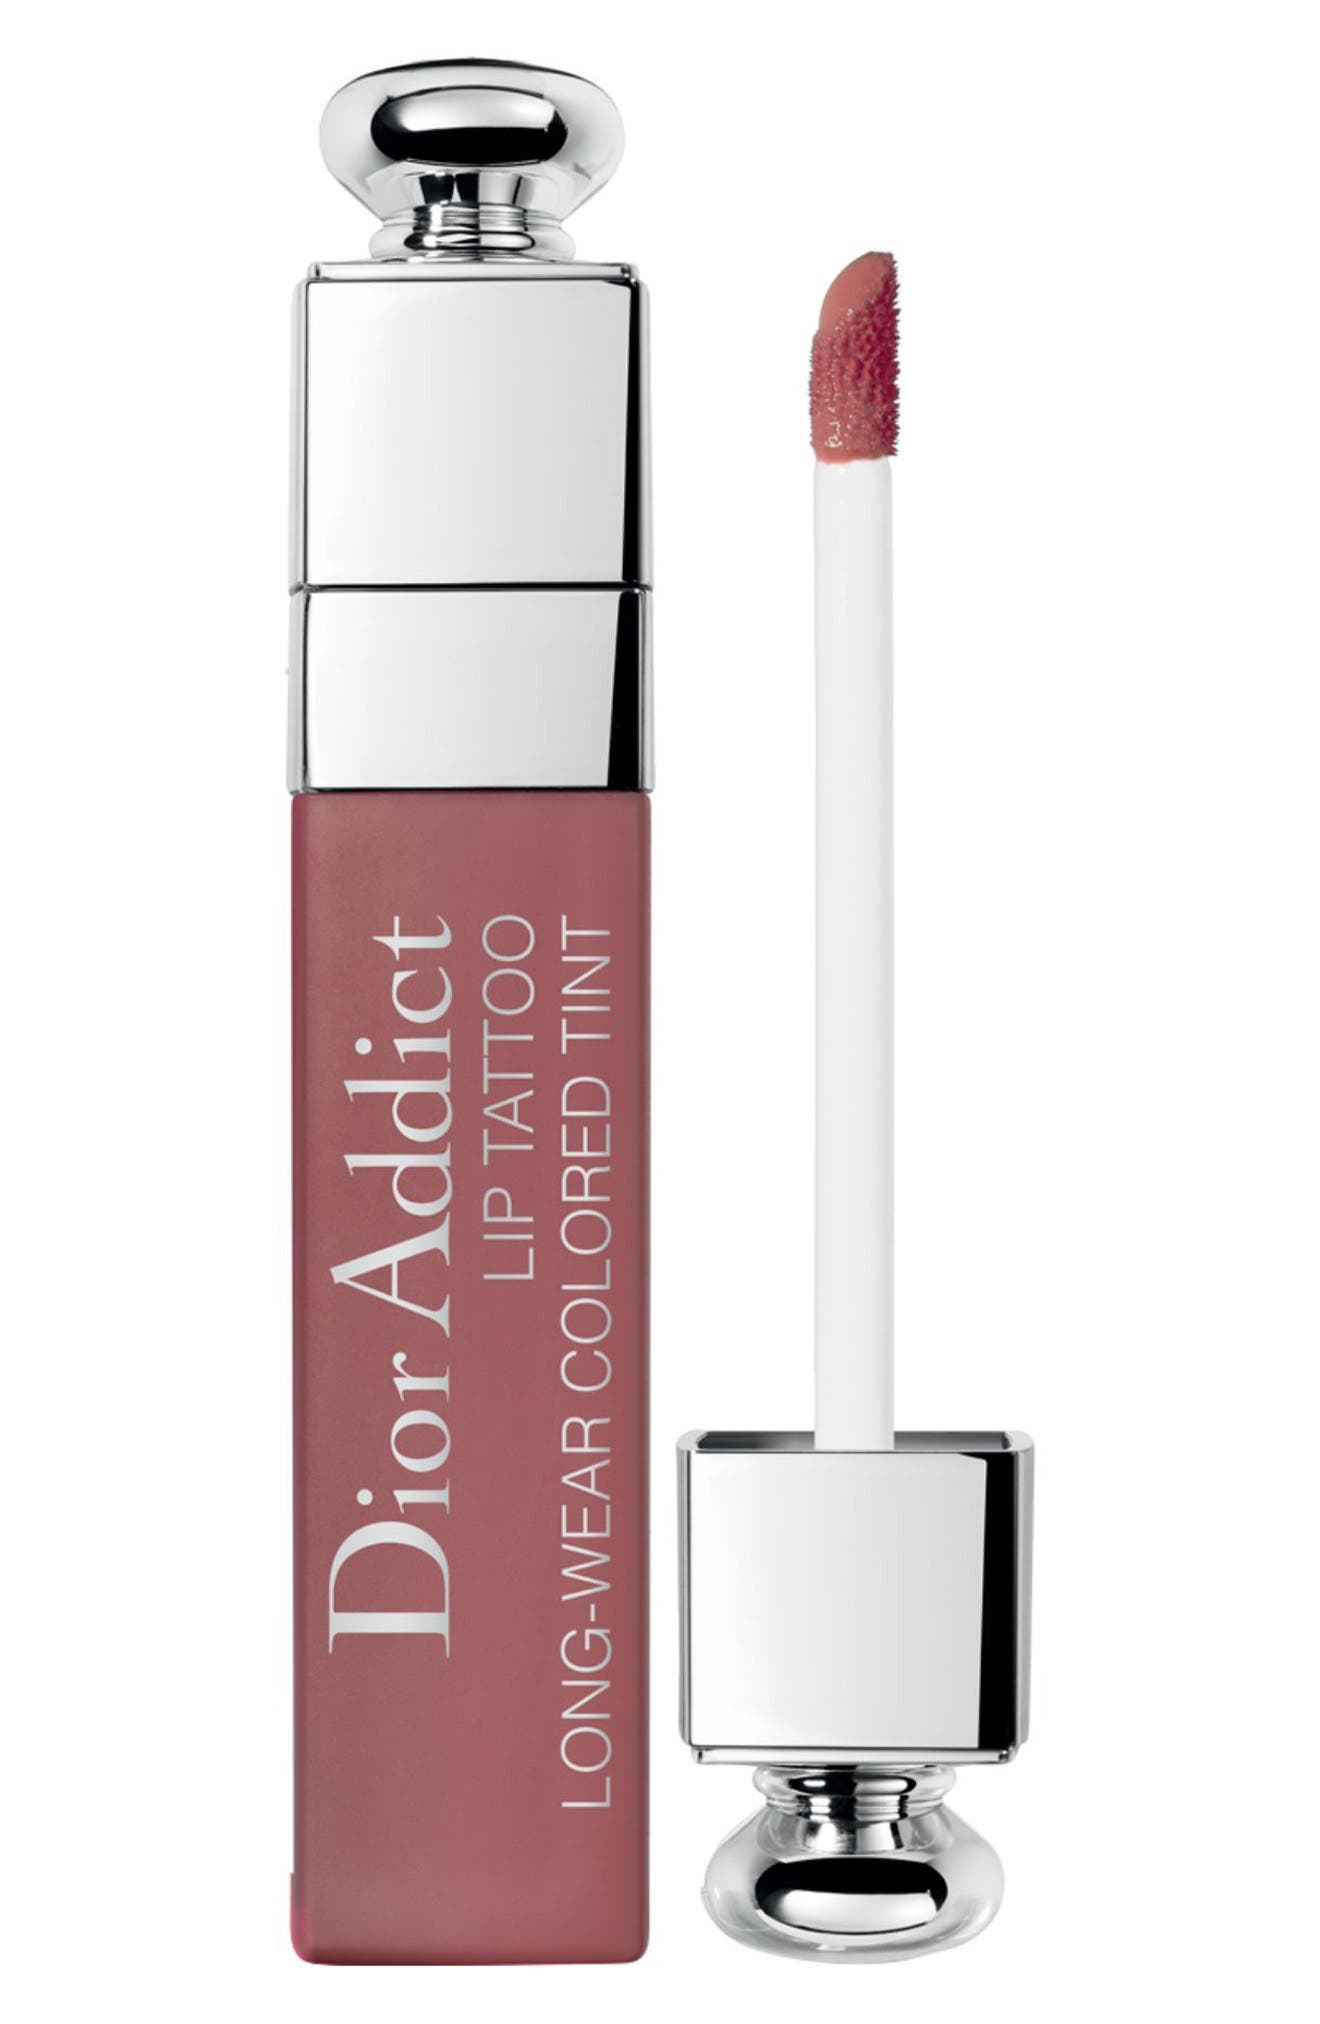 Dior Addict Lip Tattoo Long-Wearing Color Tint - 491 Natural Rosewood